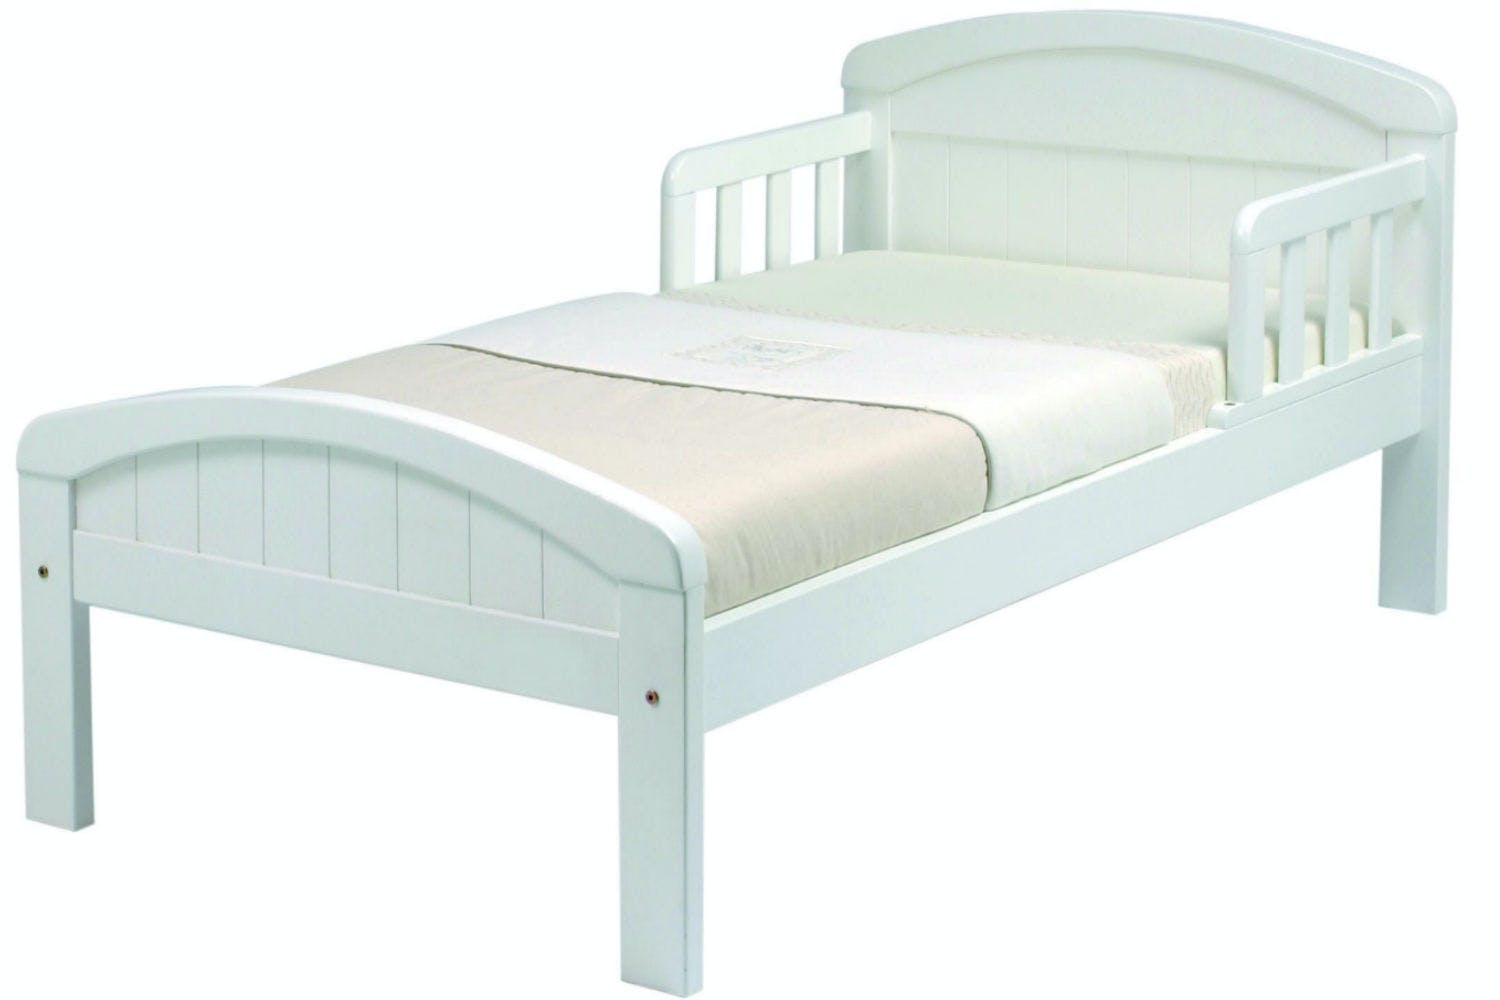 Storage toddler beds buy a storage toddler bed today amp save - Country Toddler Bed White